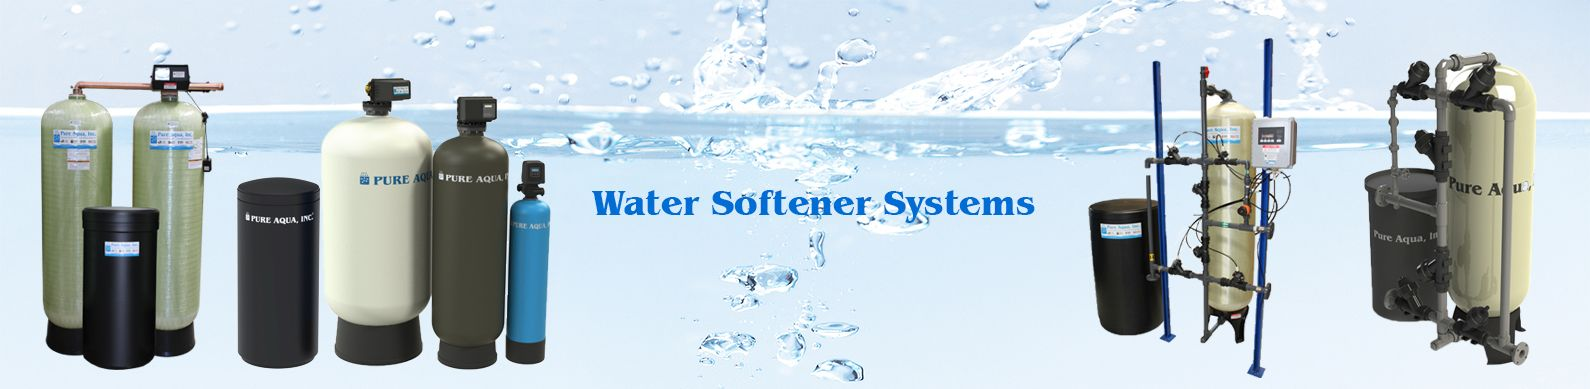 water-softeners-system-banner.jpg